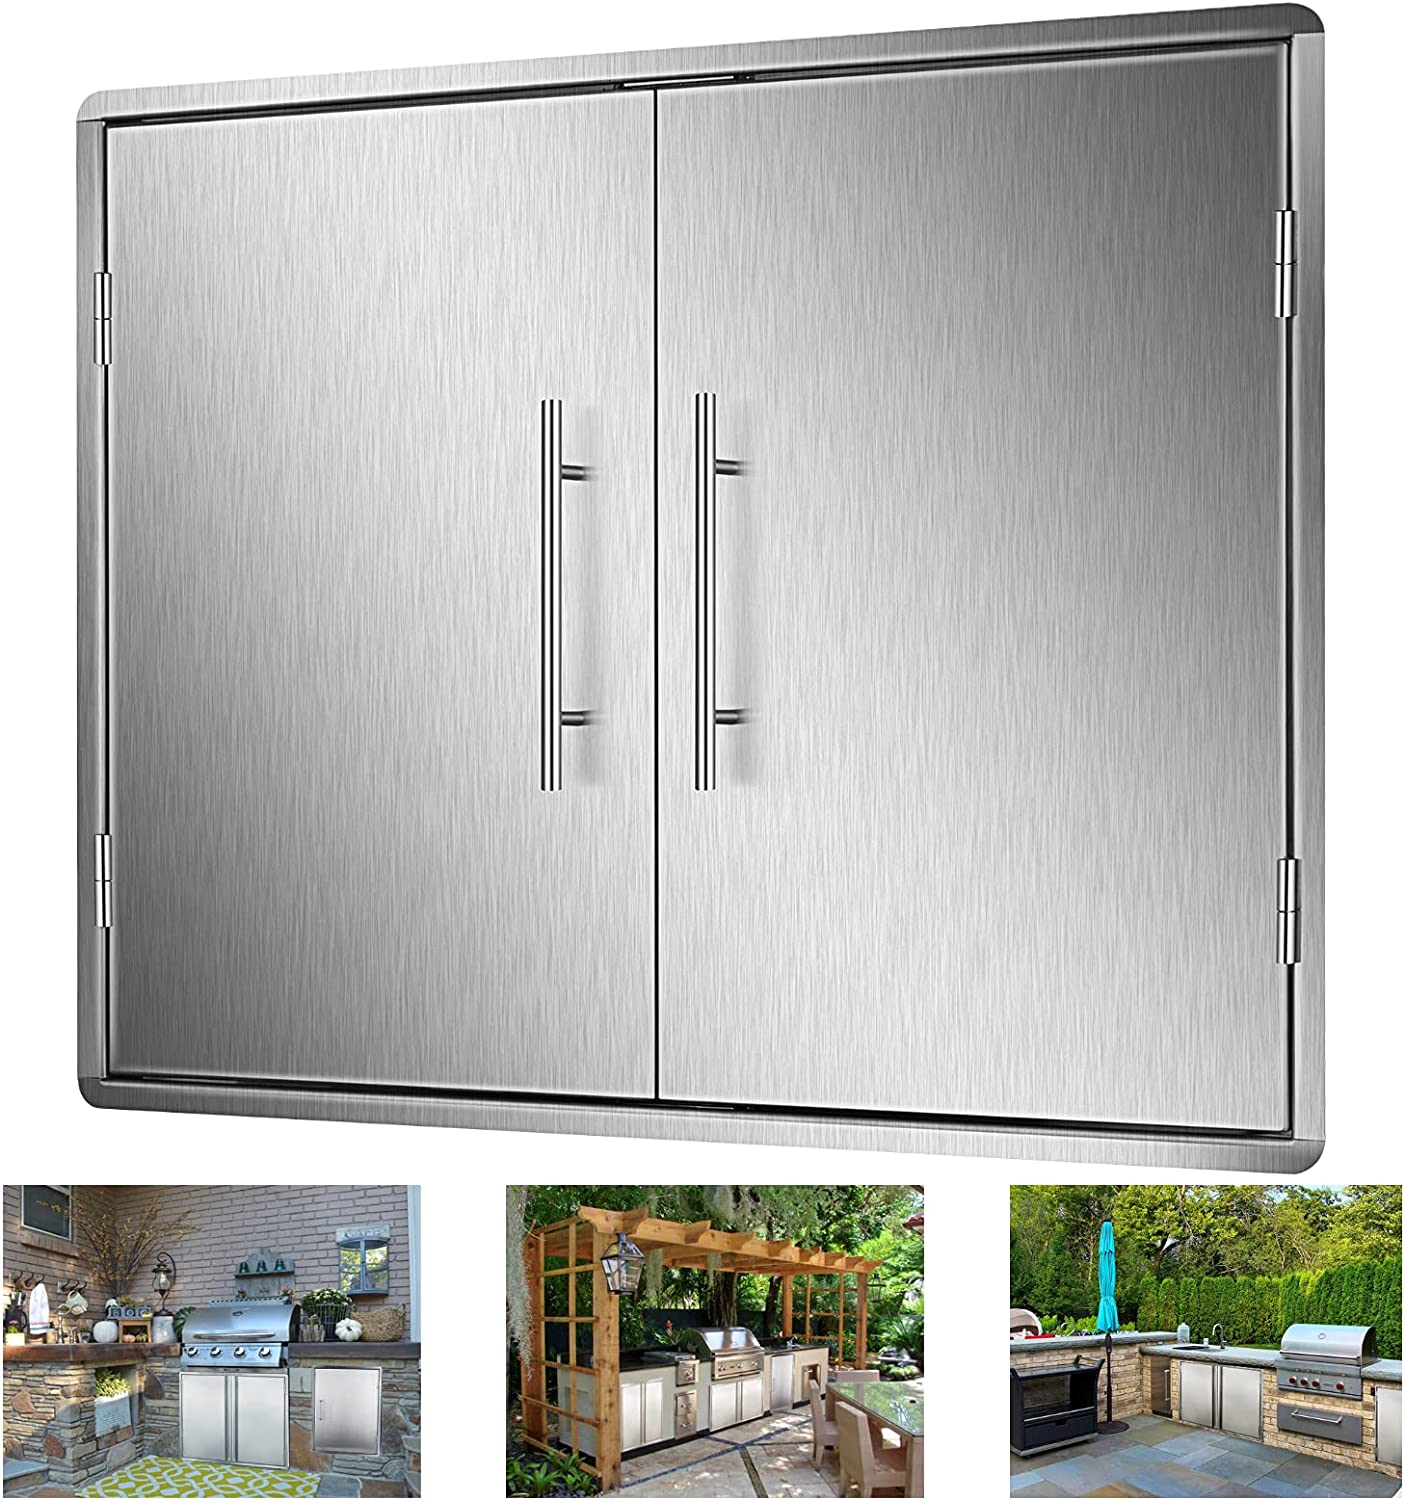 Outdoor Kitchen New Free Shipping Doors 28 X 19 Do Inch Steel Access Year-end annual account Stainless BBQ